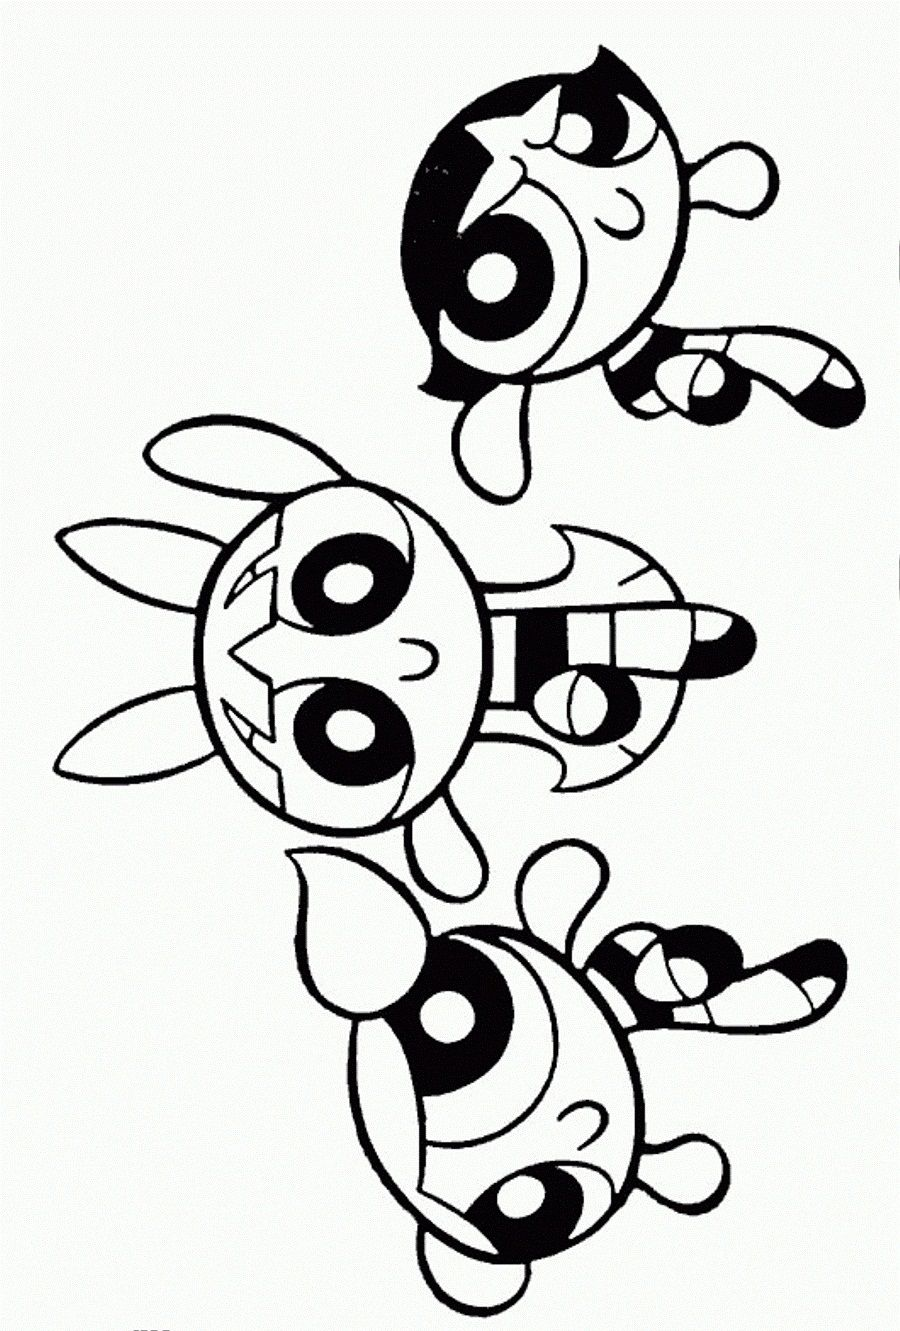 Powerpuff-Girls-Coloring-Page.jpg (900×1331)   kids coloring pages ...